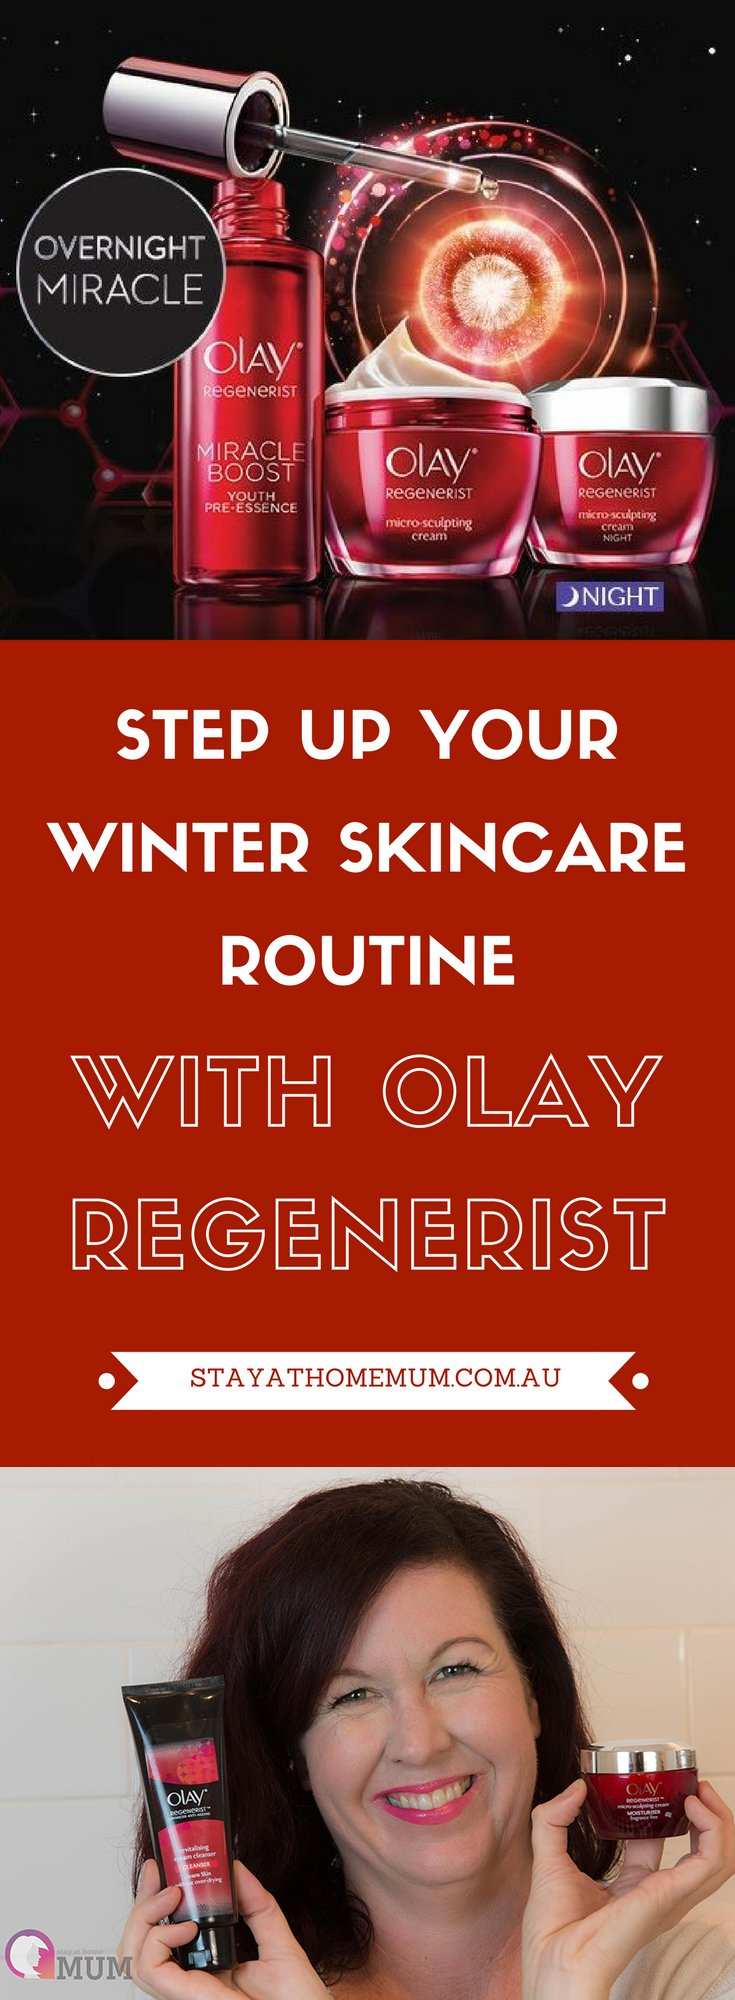 Step-Up-Your-Winter-Skincare-Routine-With-Olay-Regenerist-4_